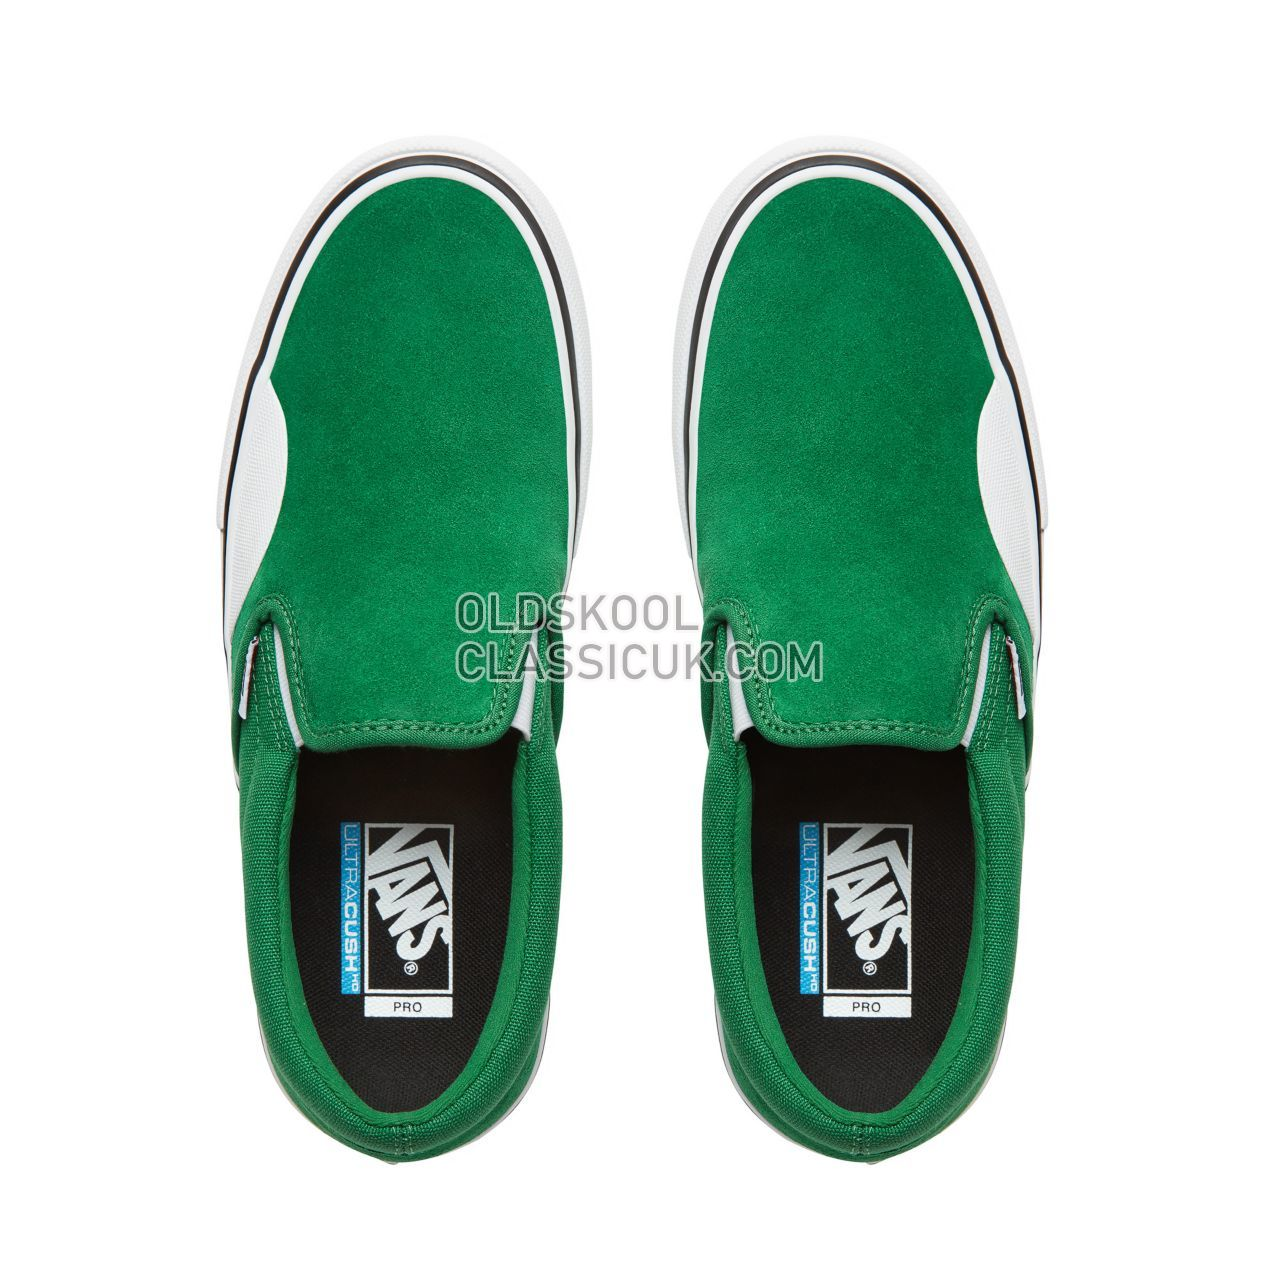 Vans Slip-On Pro Sneakers Mens Amazon/White V0097MU2A Shoes